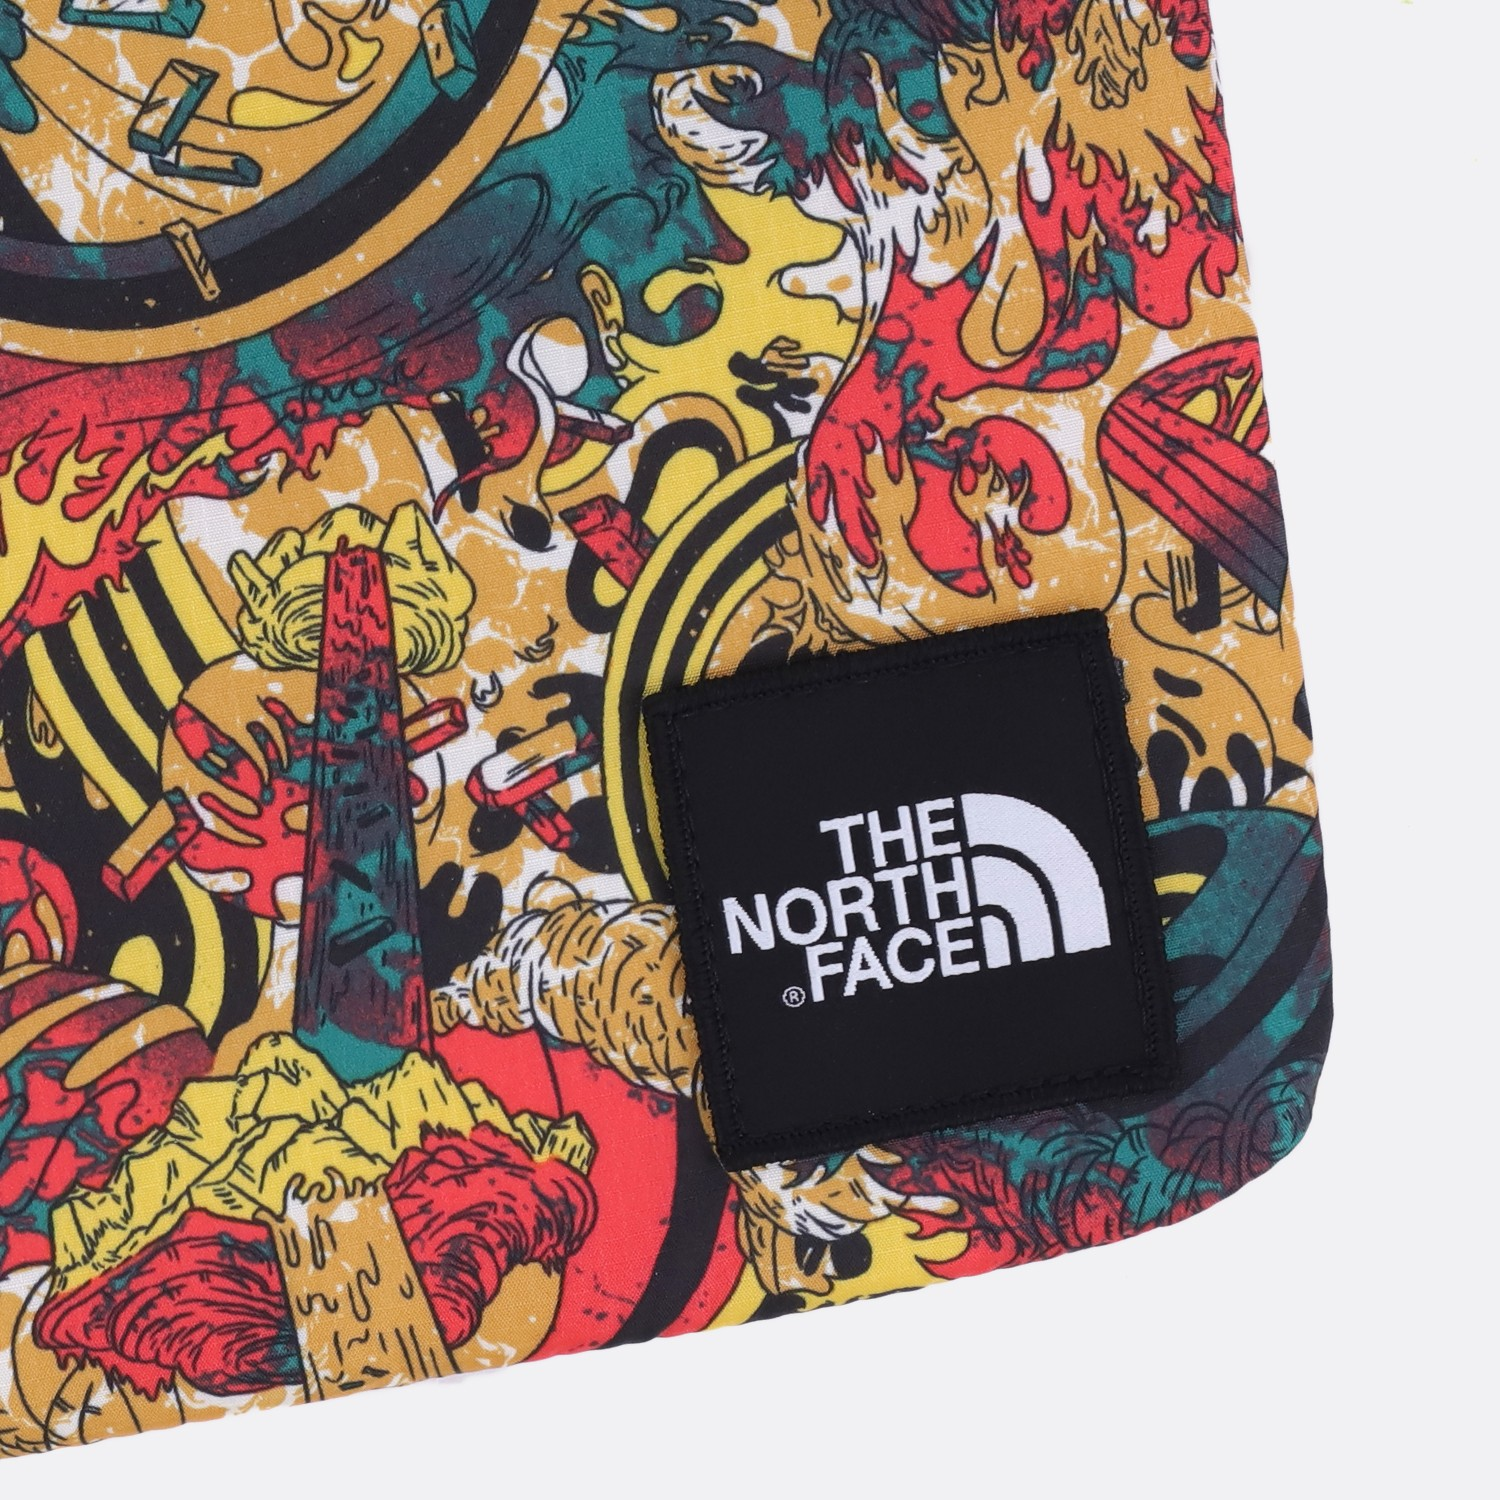 THE NORTH FACE EXPEDITION AFRICA FLYWEIGHT LAPTOP 13 LEOPARD YELLOW 1a40f8ef736e